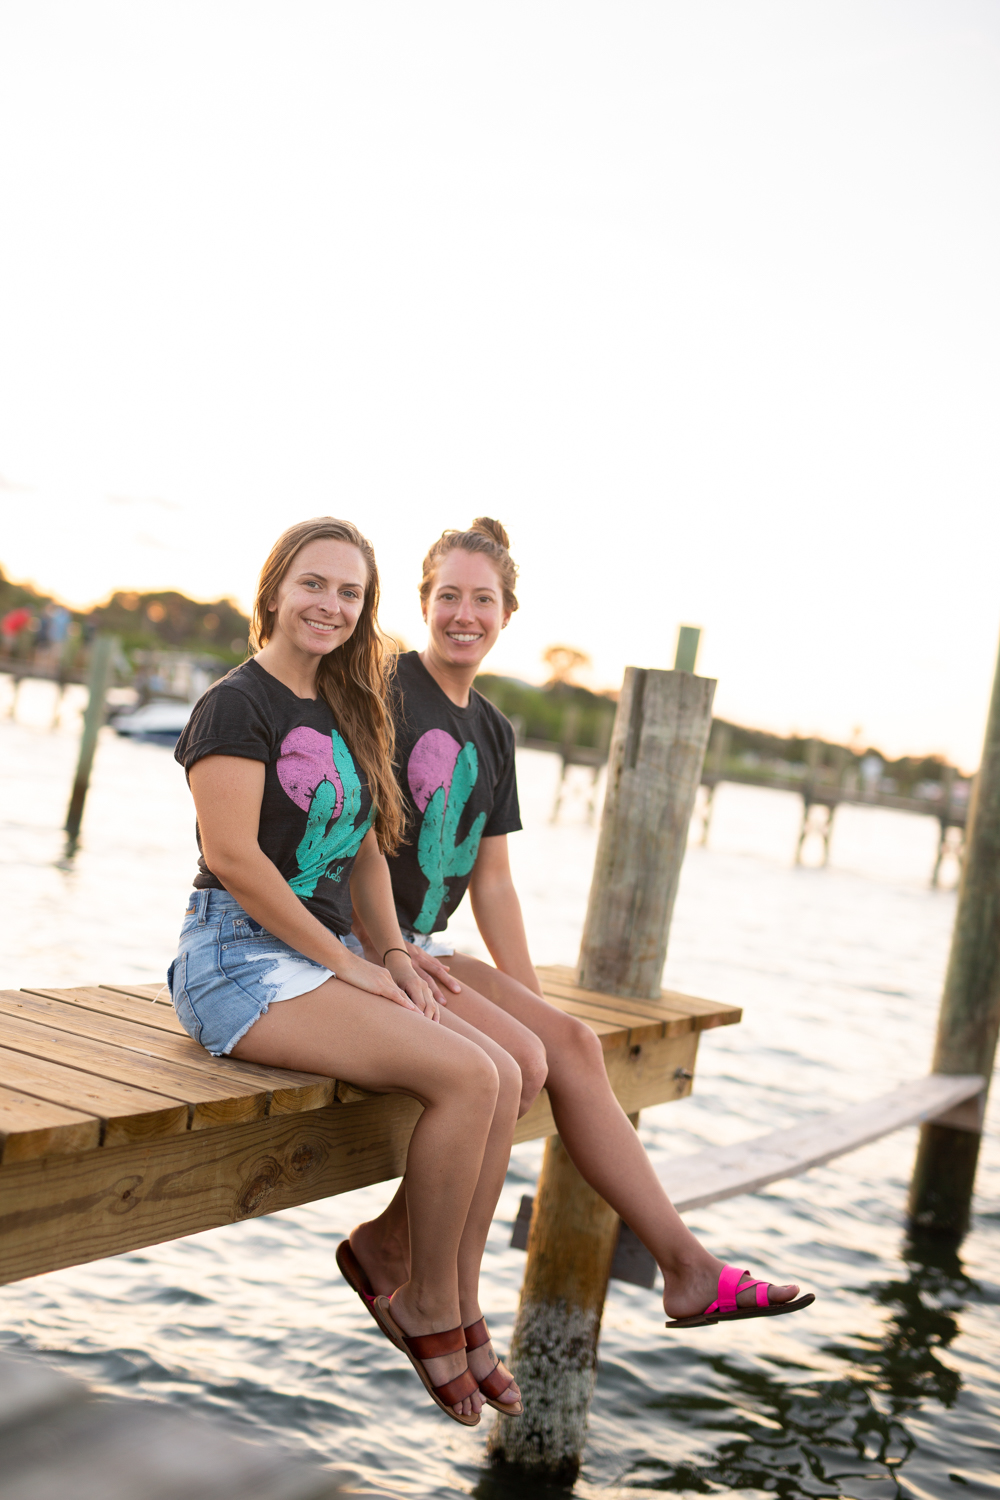 Fun in the Sun with Hello Apparel | Hello Apparel Cactus T-Shirt | Coastal Living | Best Friends - Sunshine Style